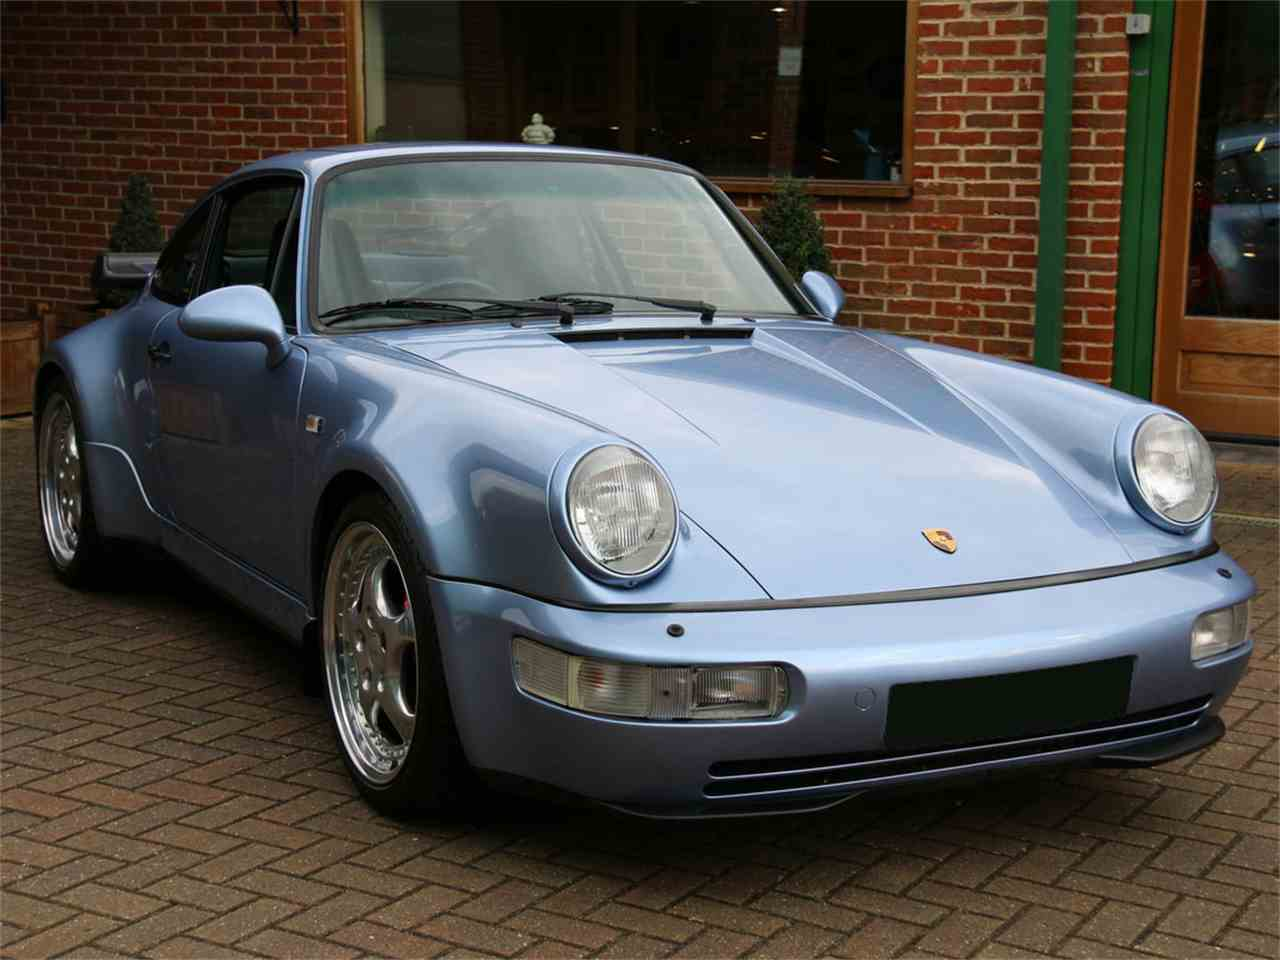 Large Picture of '94 Porsche 911 Type 964 Turbo 3.6 RHD Auction Vehicle - KH4U